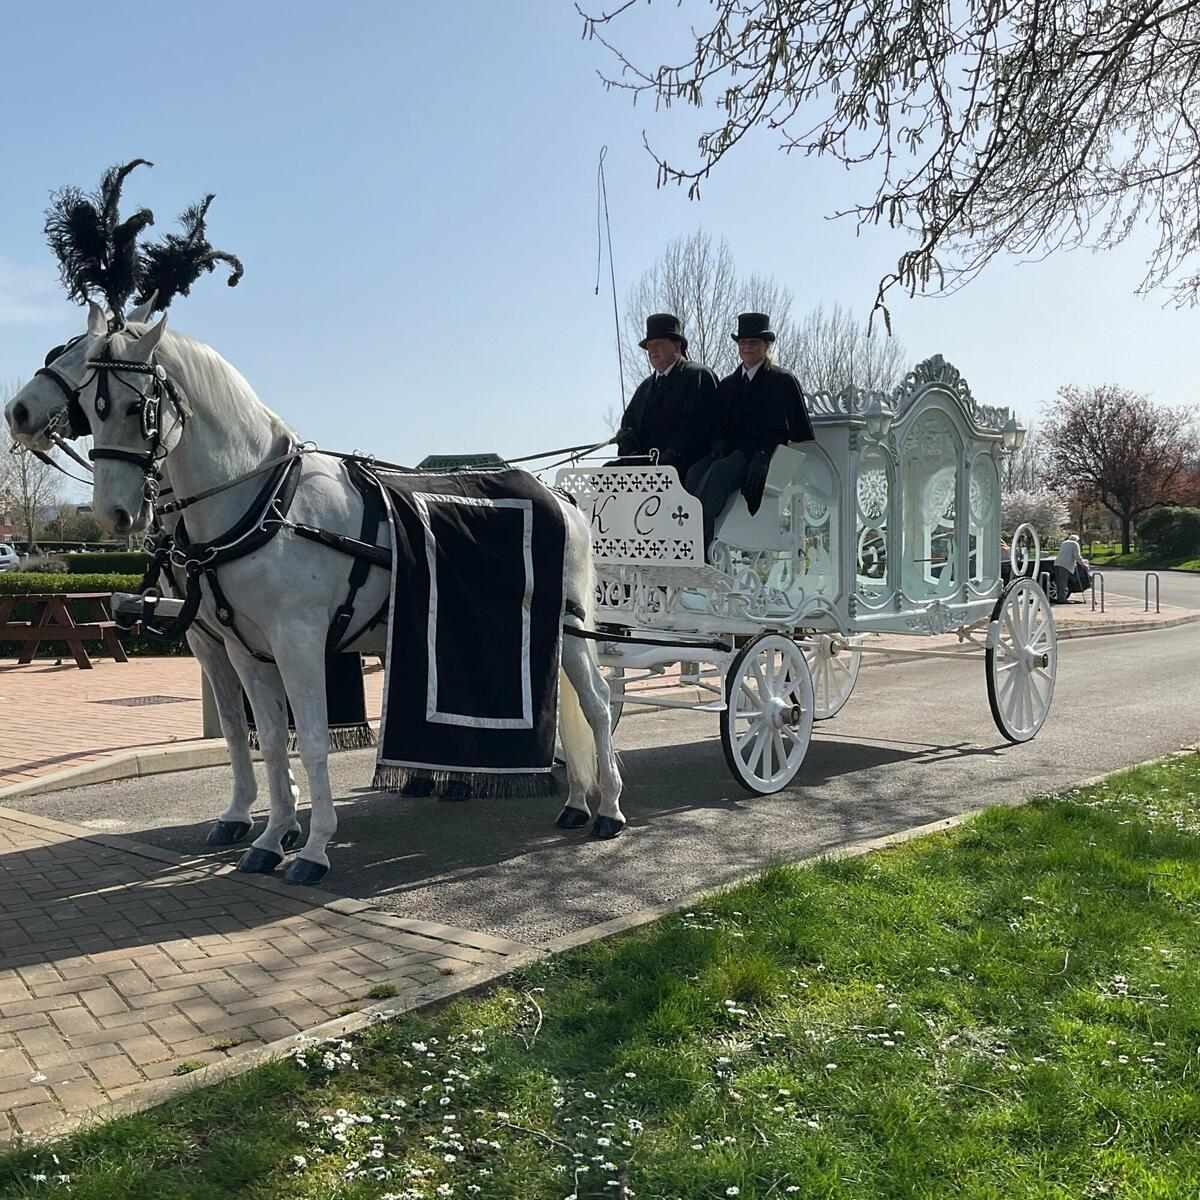 Horse drawn carriages kc